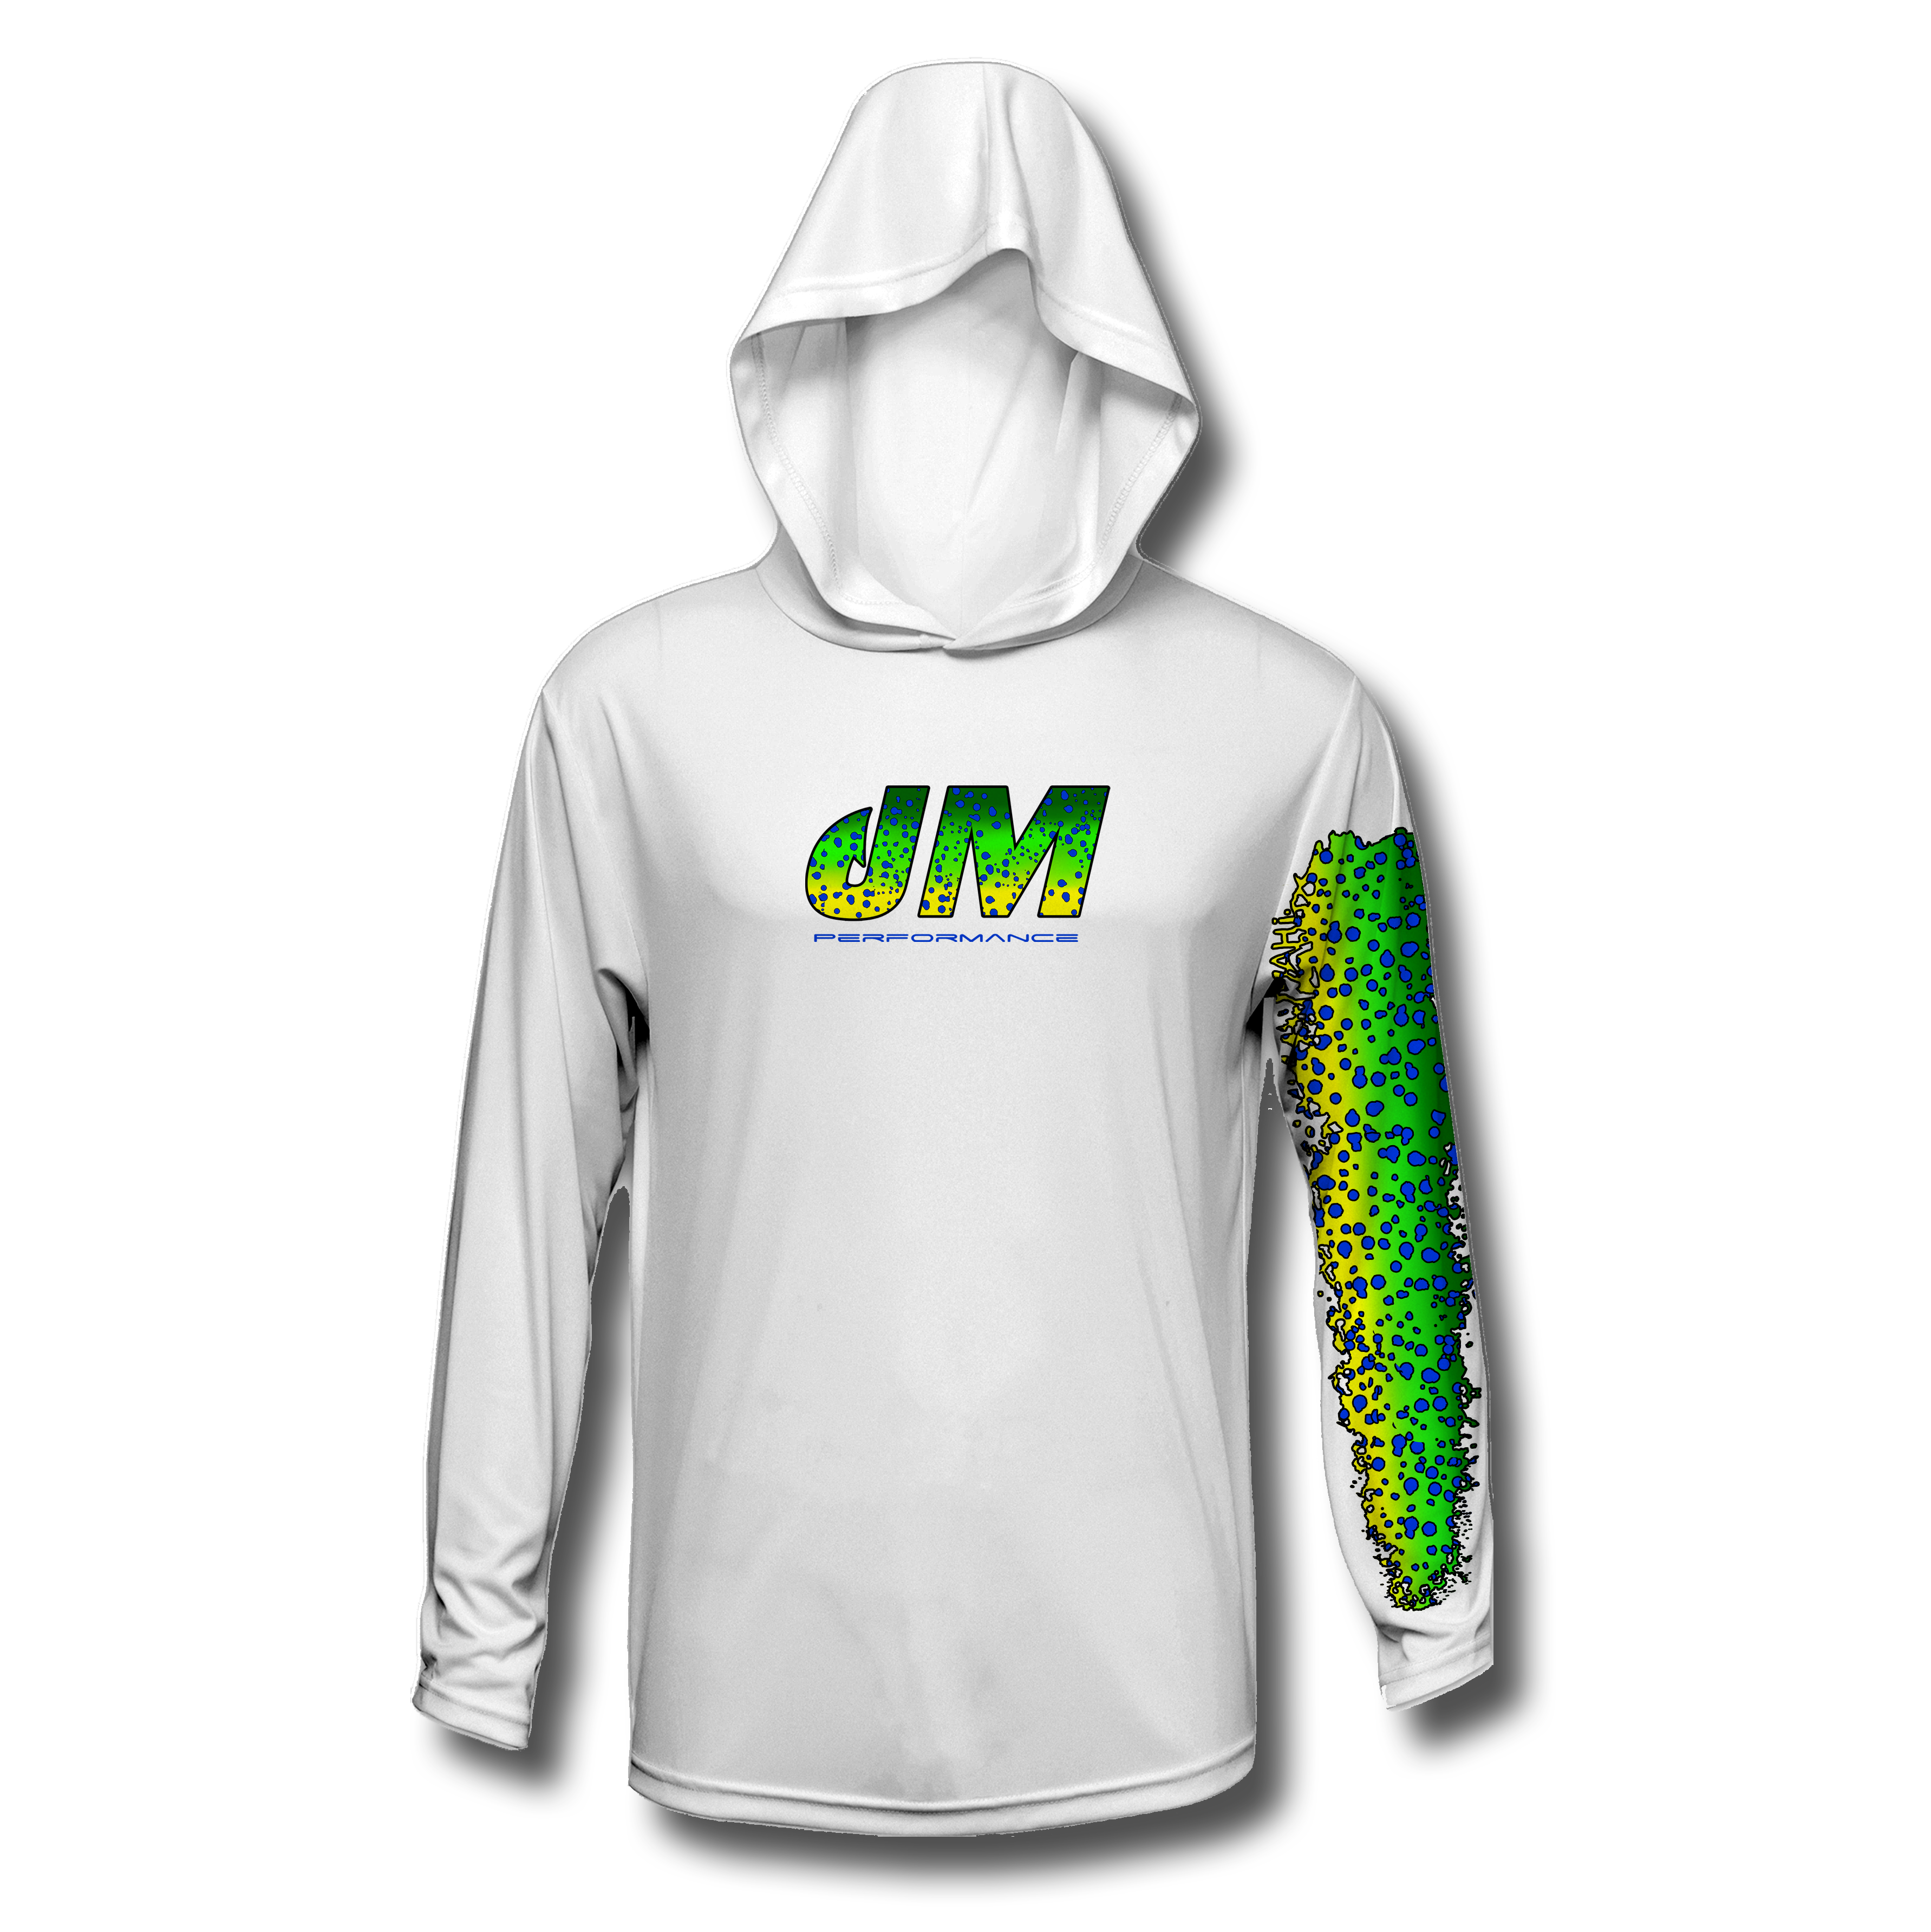 jmh046-mock-up-dolphin-white-front.png